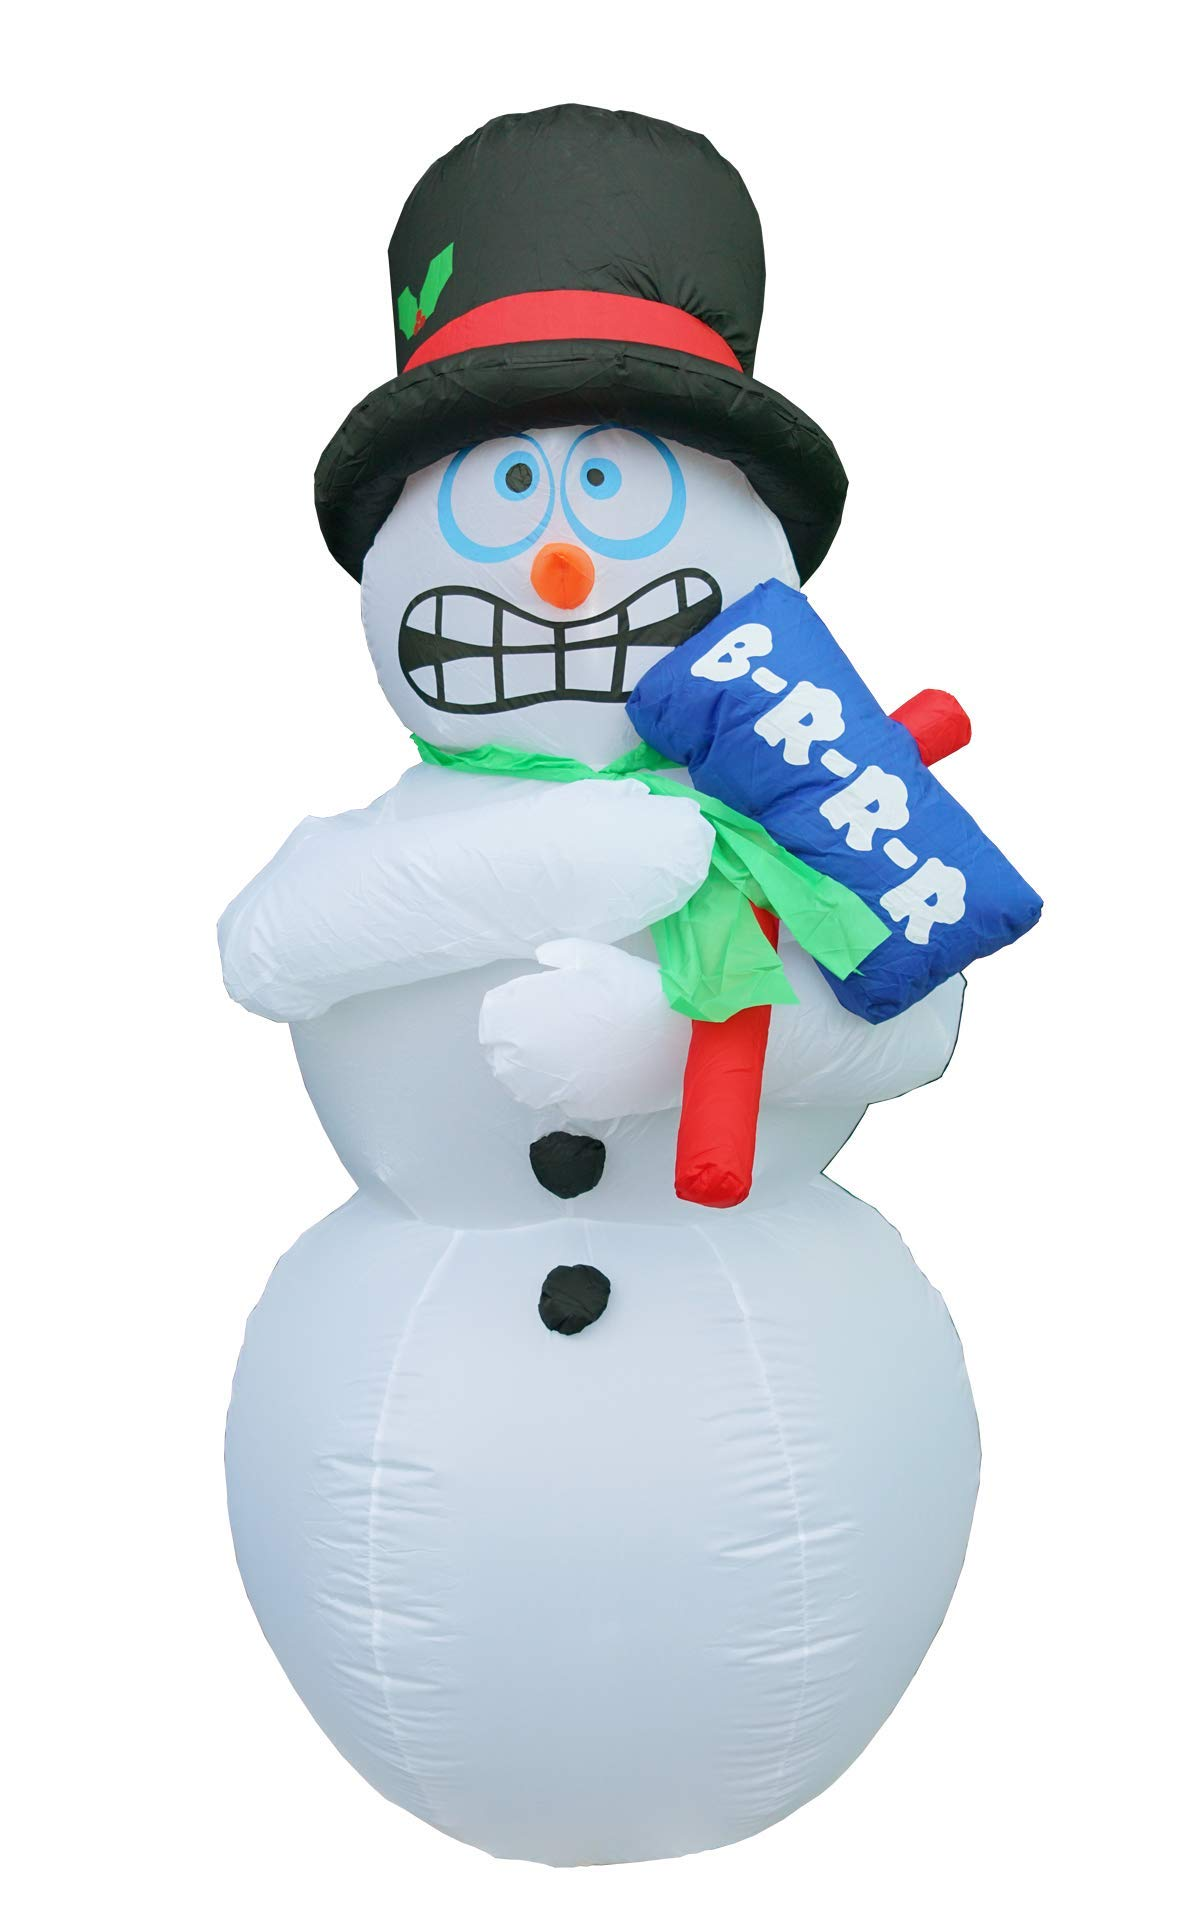 BIGJOYS 6 Ft Inflatable Christmas Shiver Snowman Decoration Shaking Snowman Decorations for Indoors Outdoors Yad Home Garden Lawn